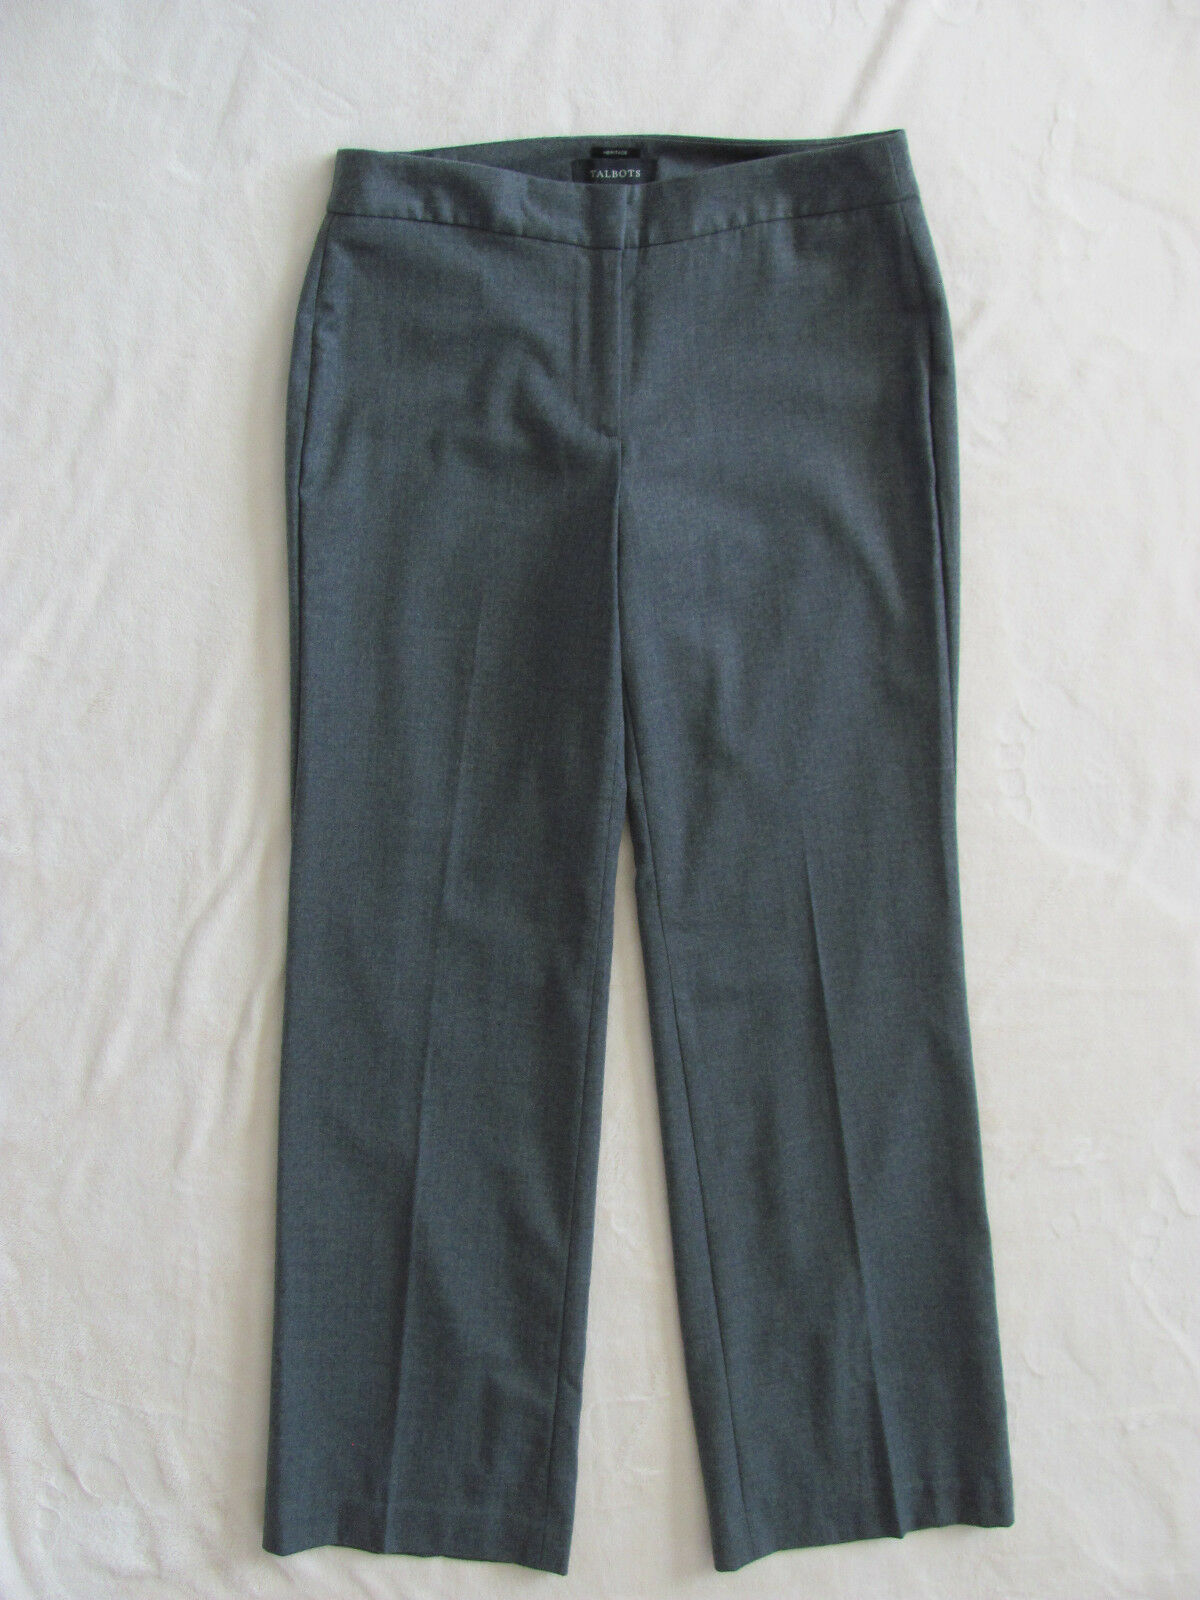 Talbots Heritage Lined Wool Blend Pants- Dressy-Shadow Heather-Size 4 -NWT  129